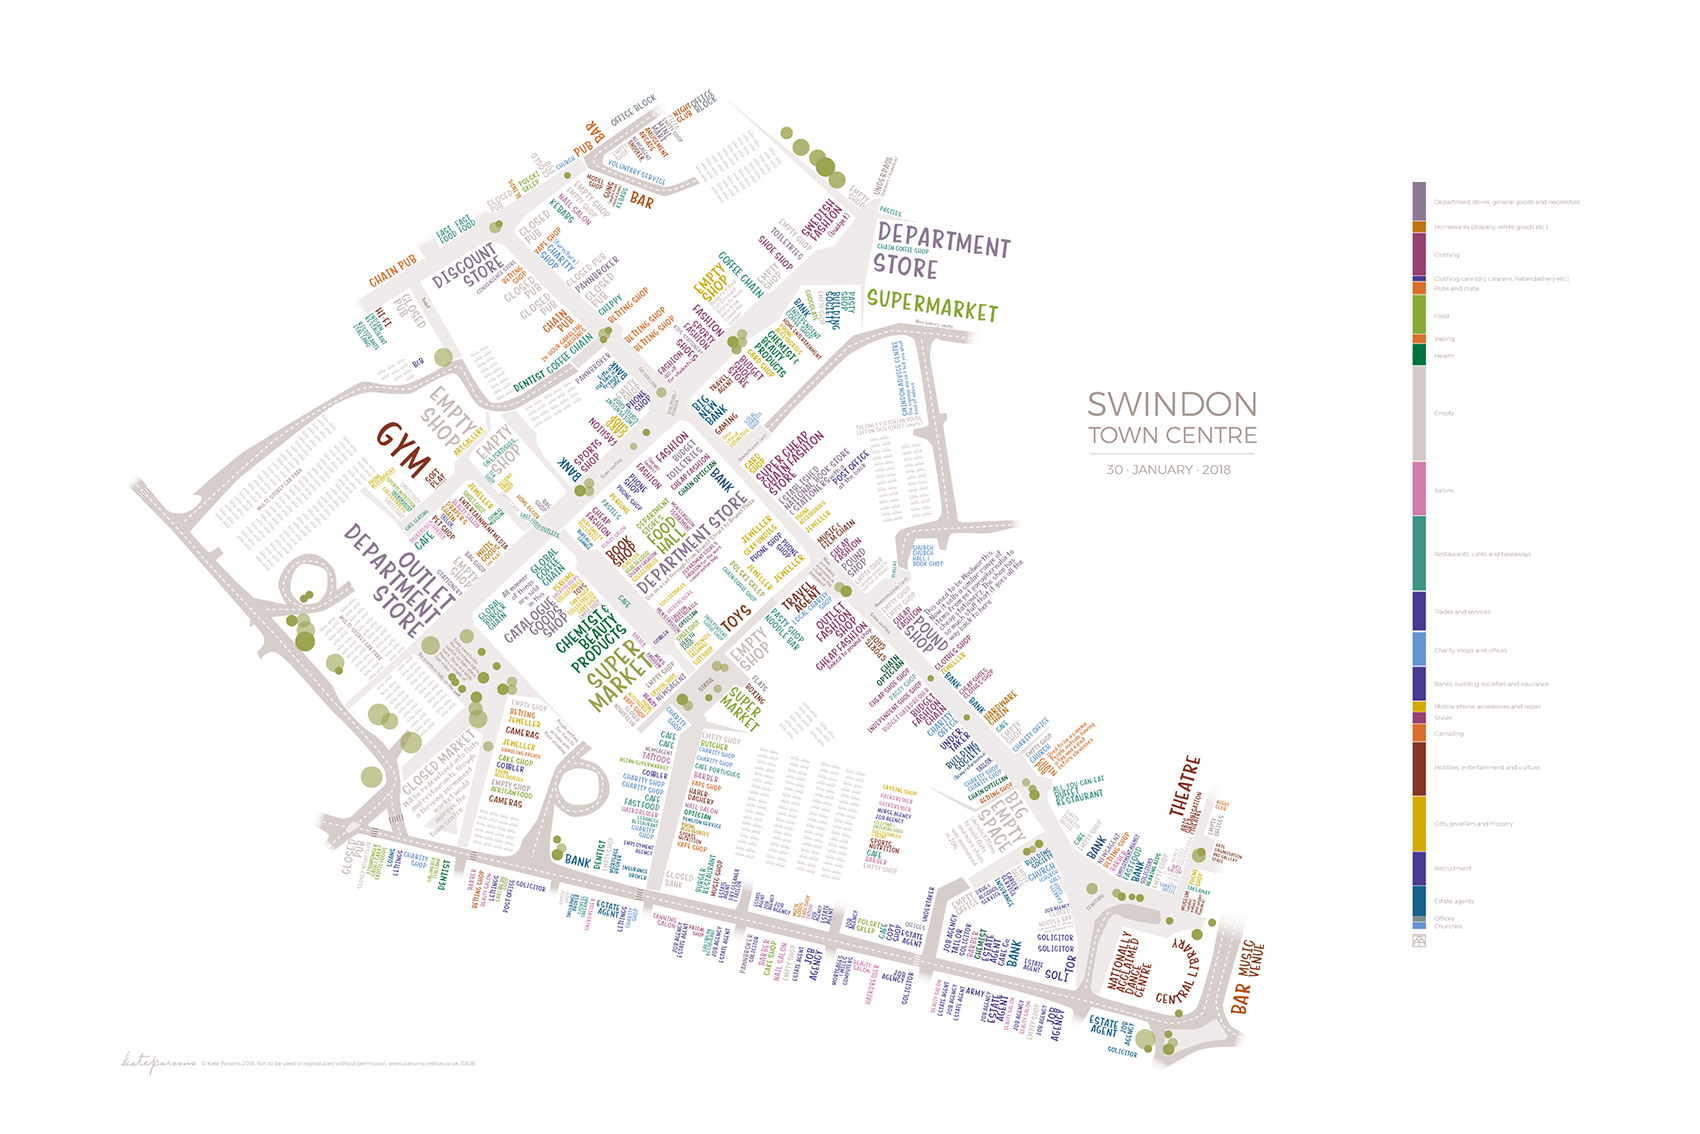 typographic map of Swindon town centre